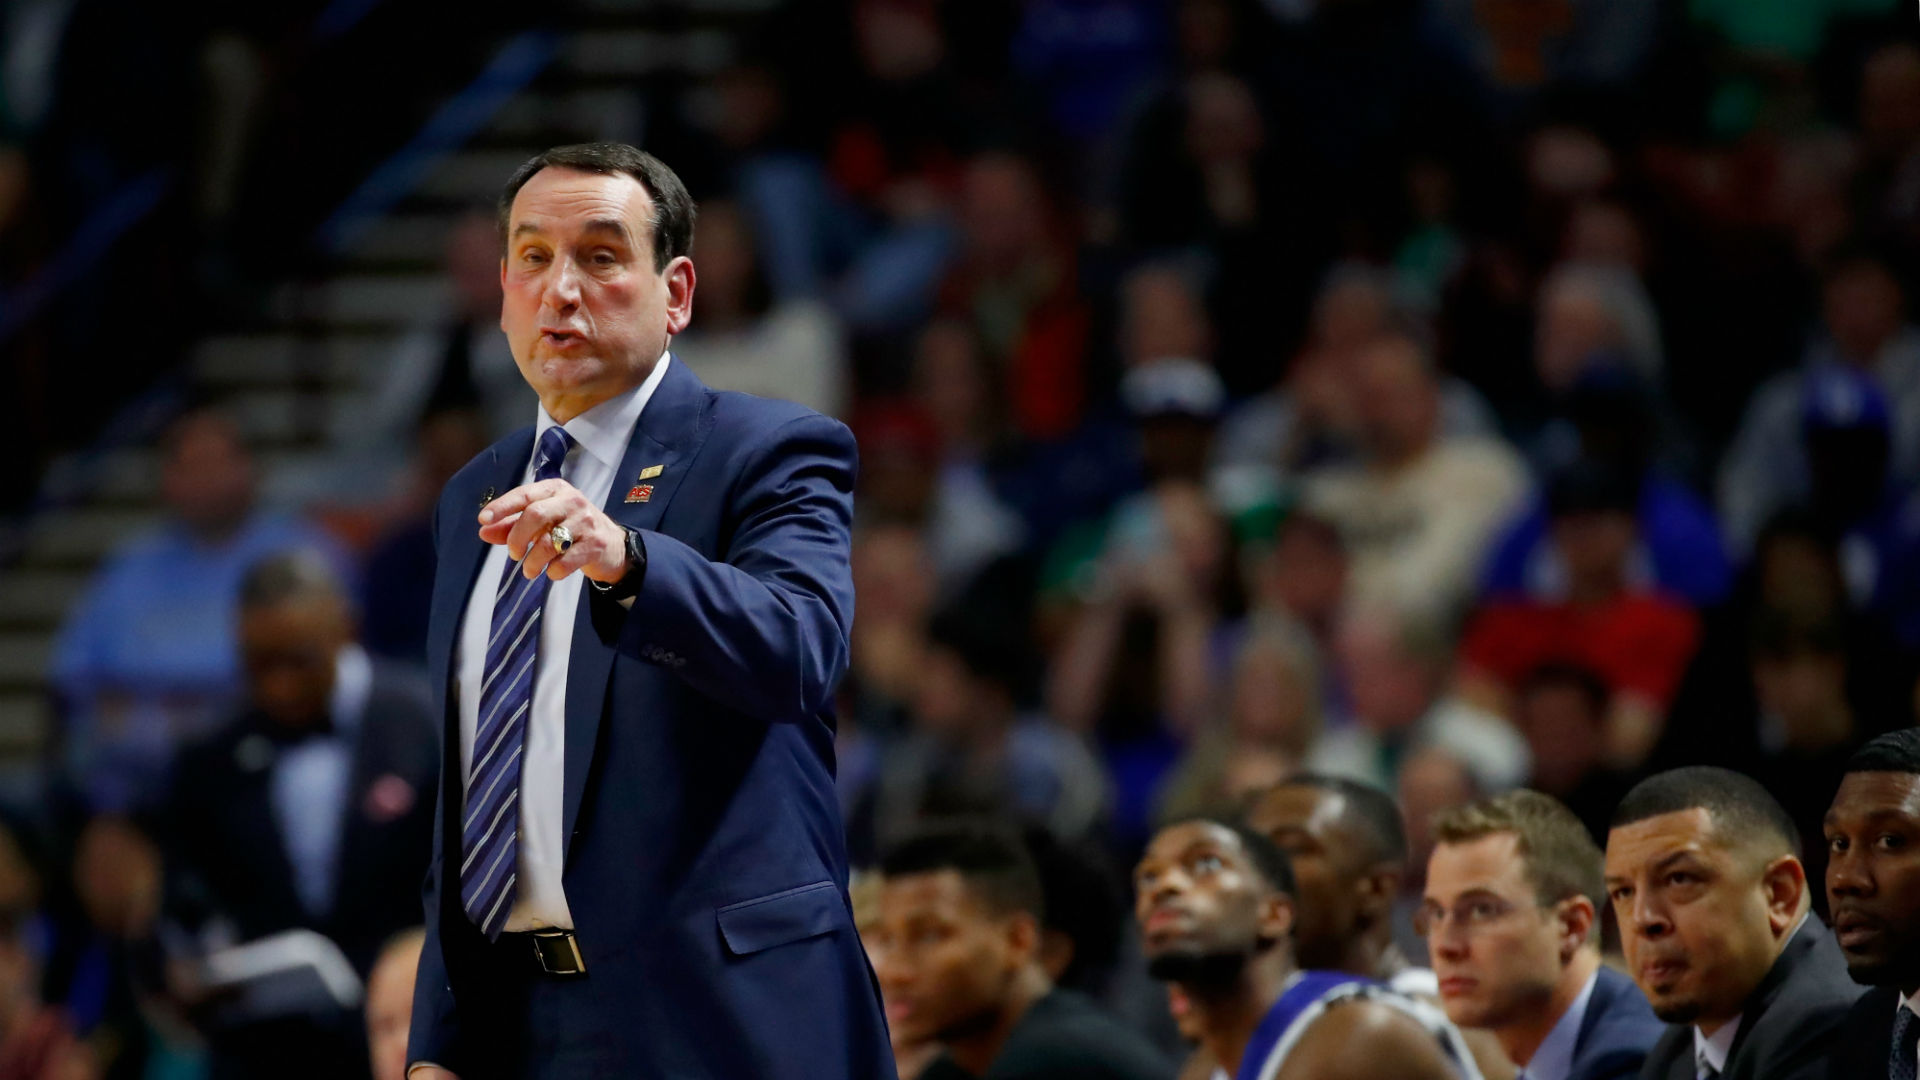 Mike Krzyzewski To Have Knee Surgery, Duke Cancels Dominican Republic Trip